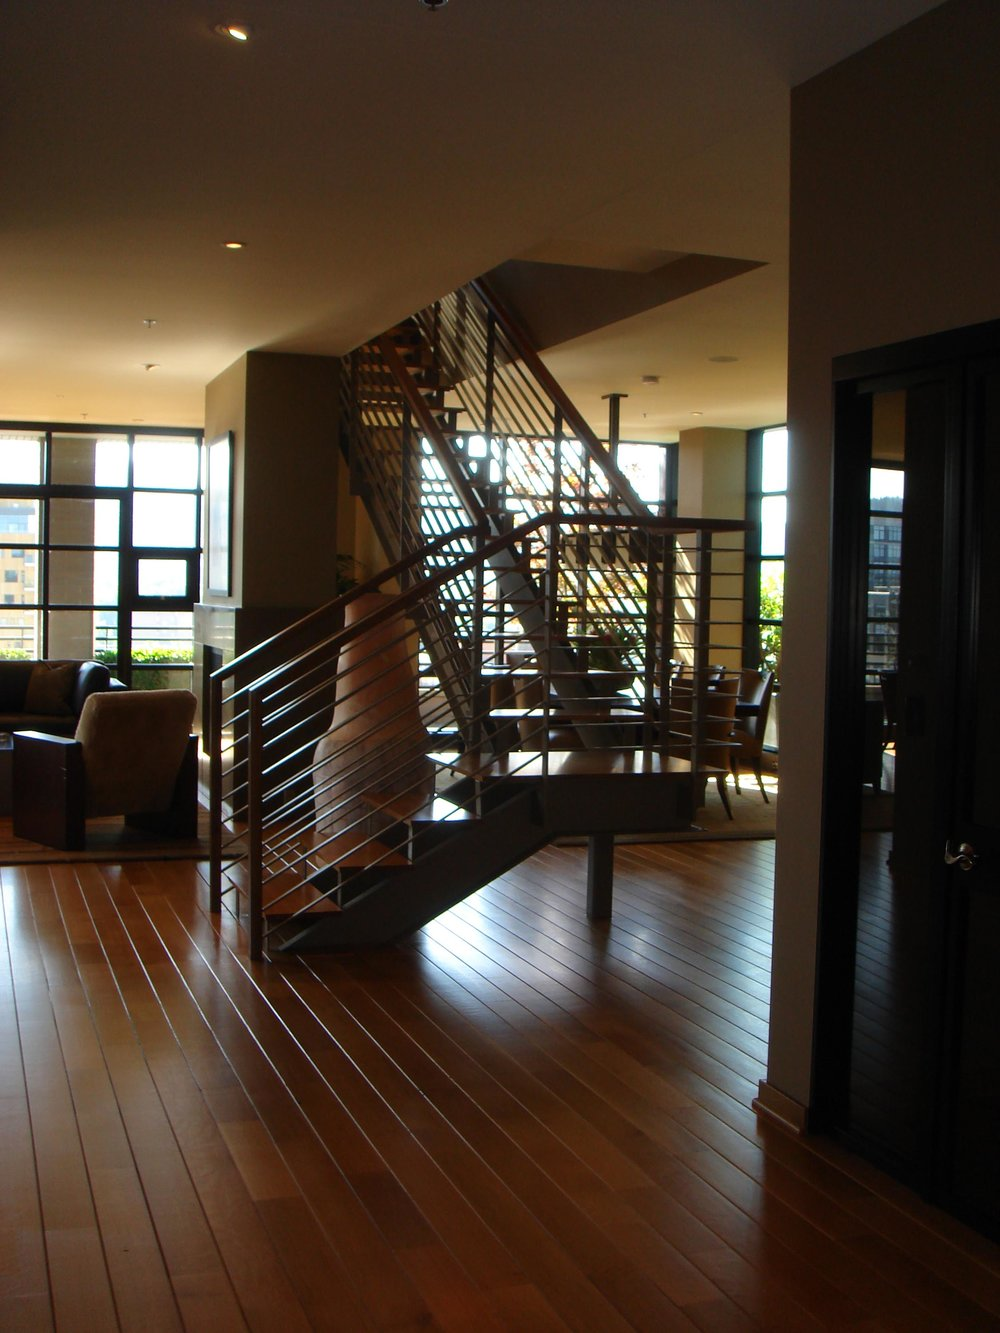 House interior with staircase and a hardwood floor